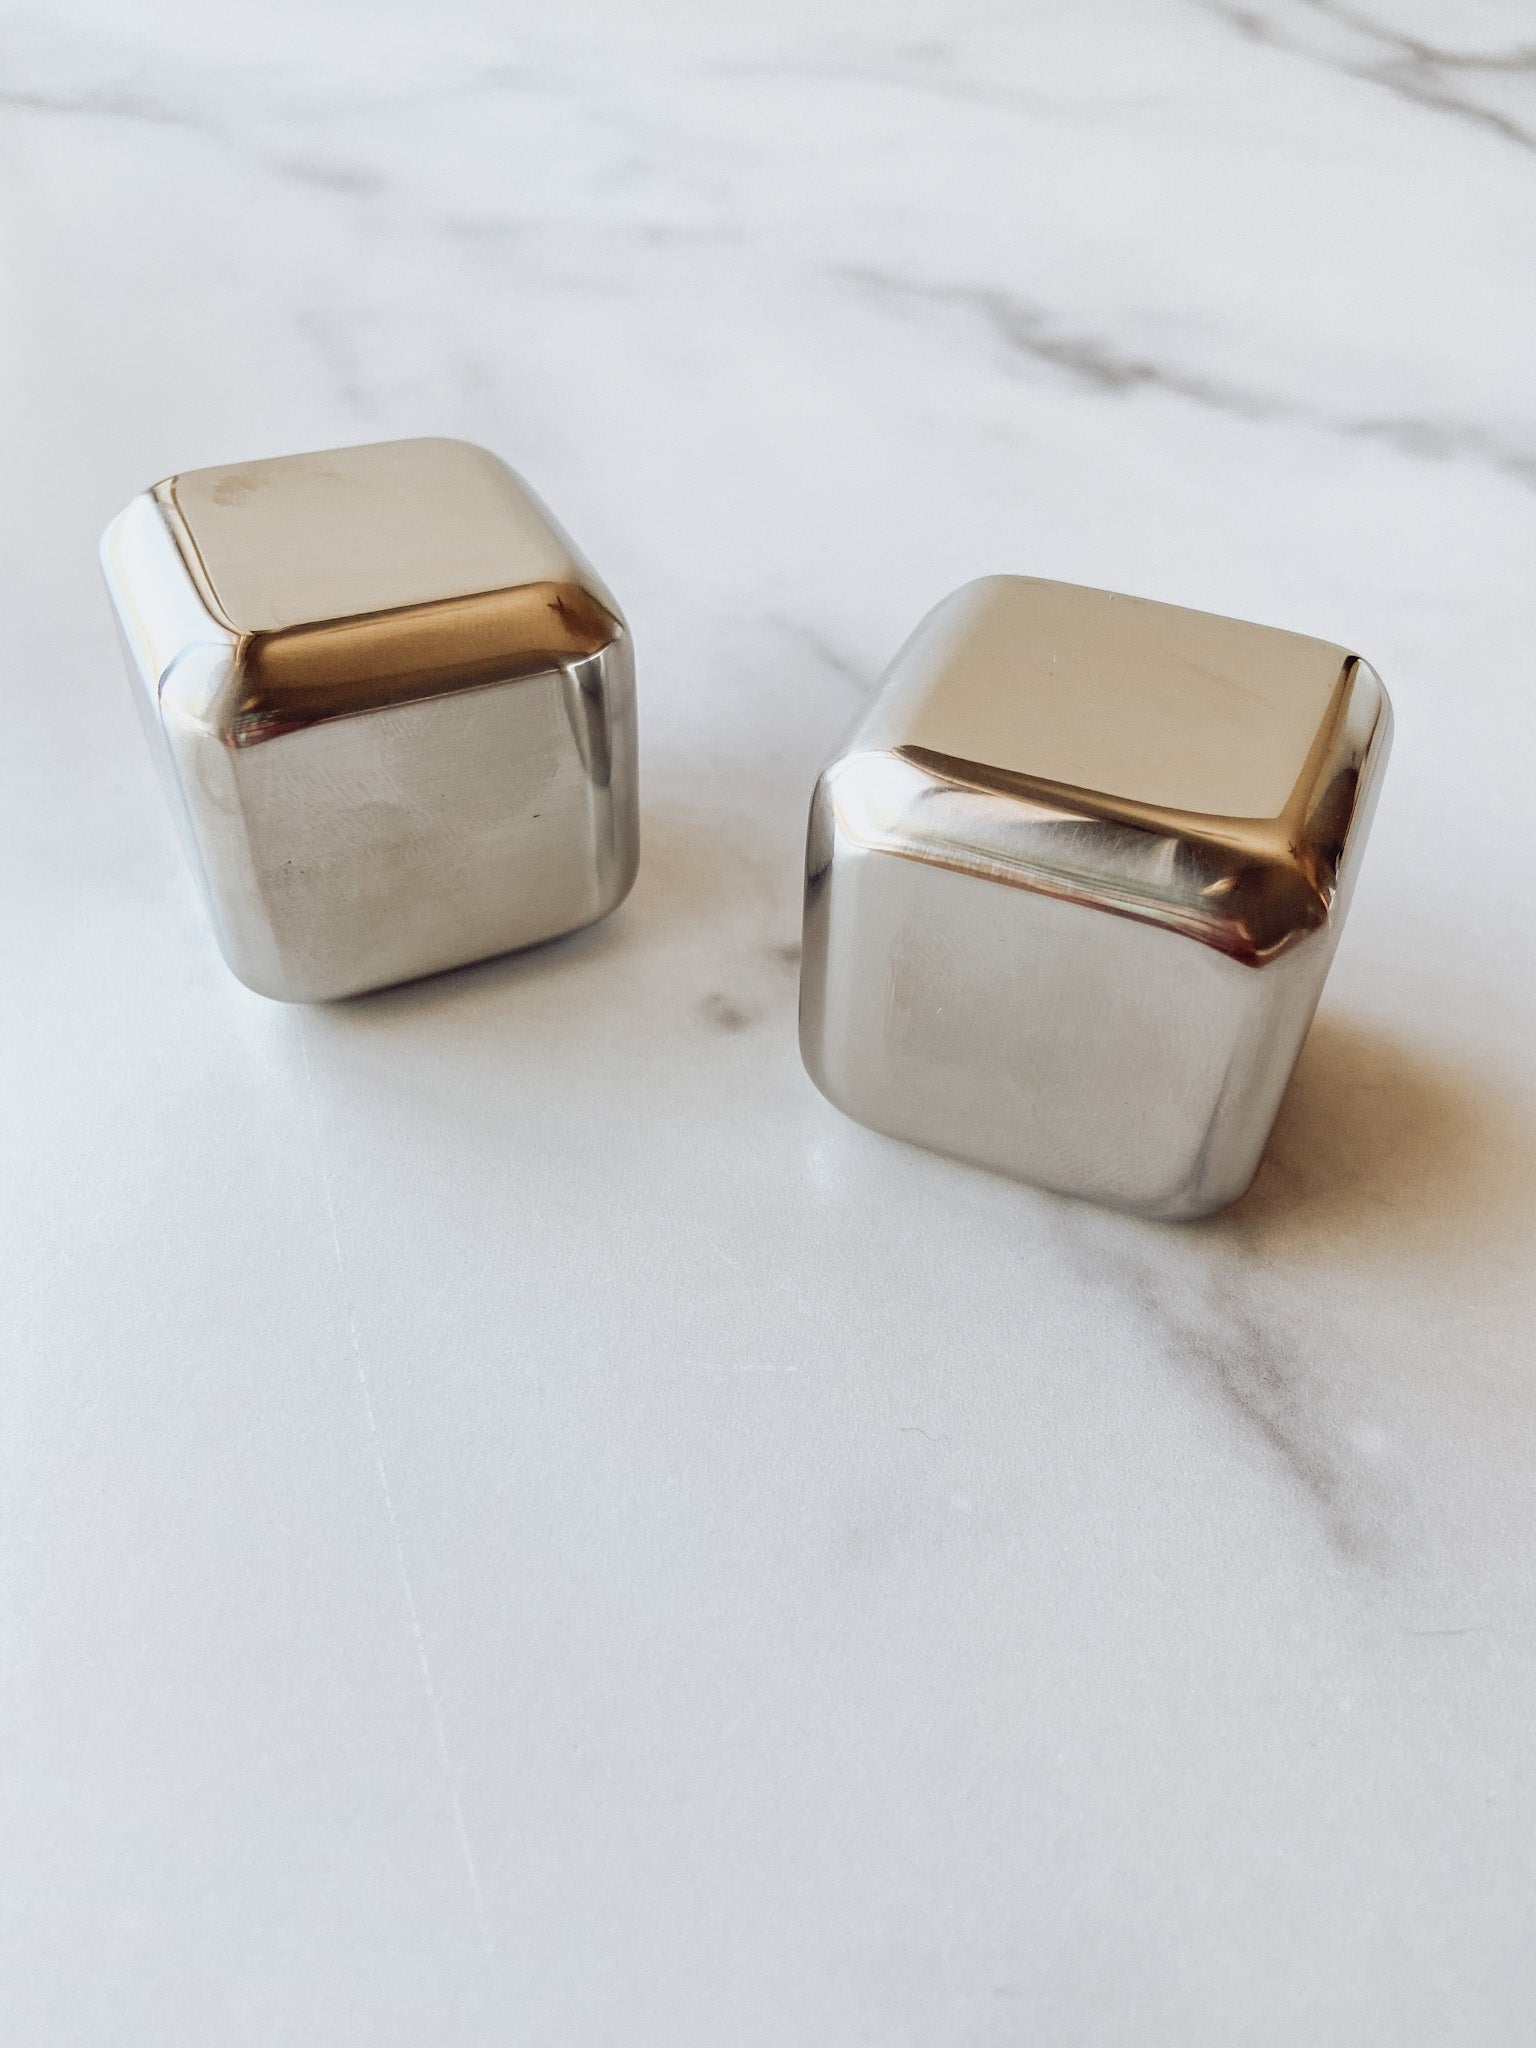 Glacier Rocks Stainless Steel Cubes (set of two)